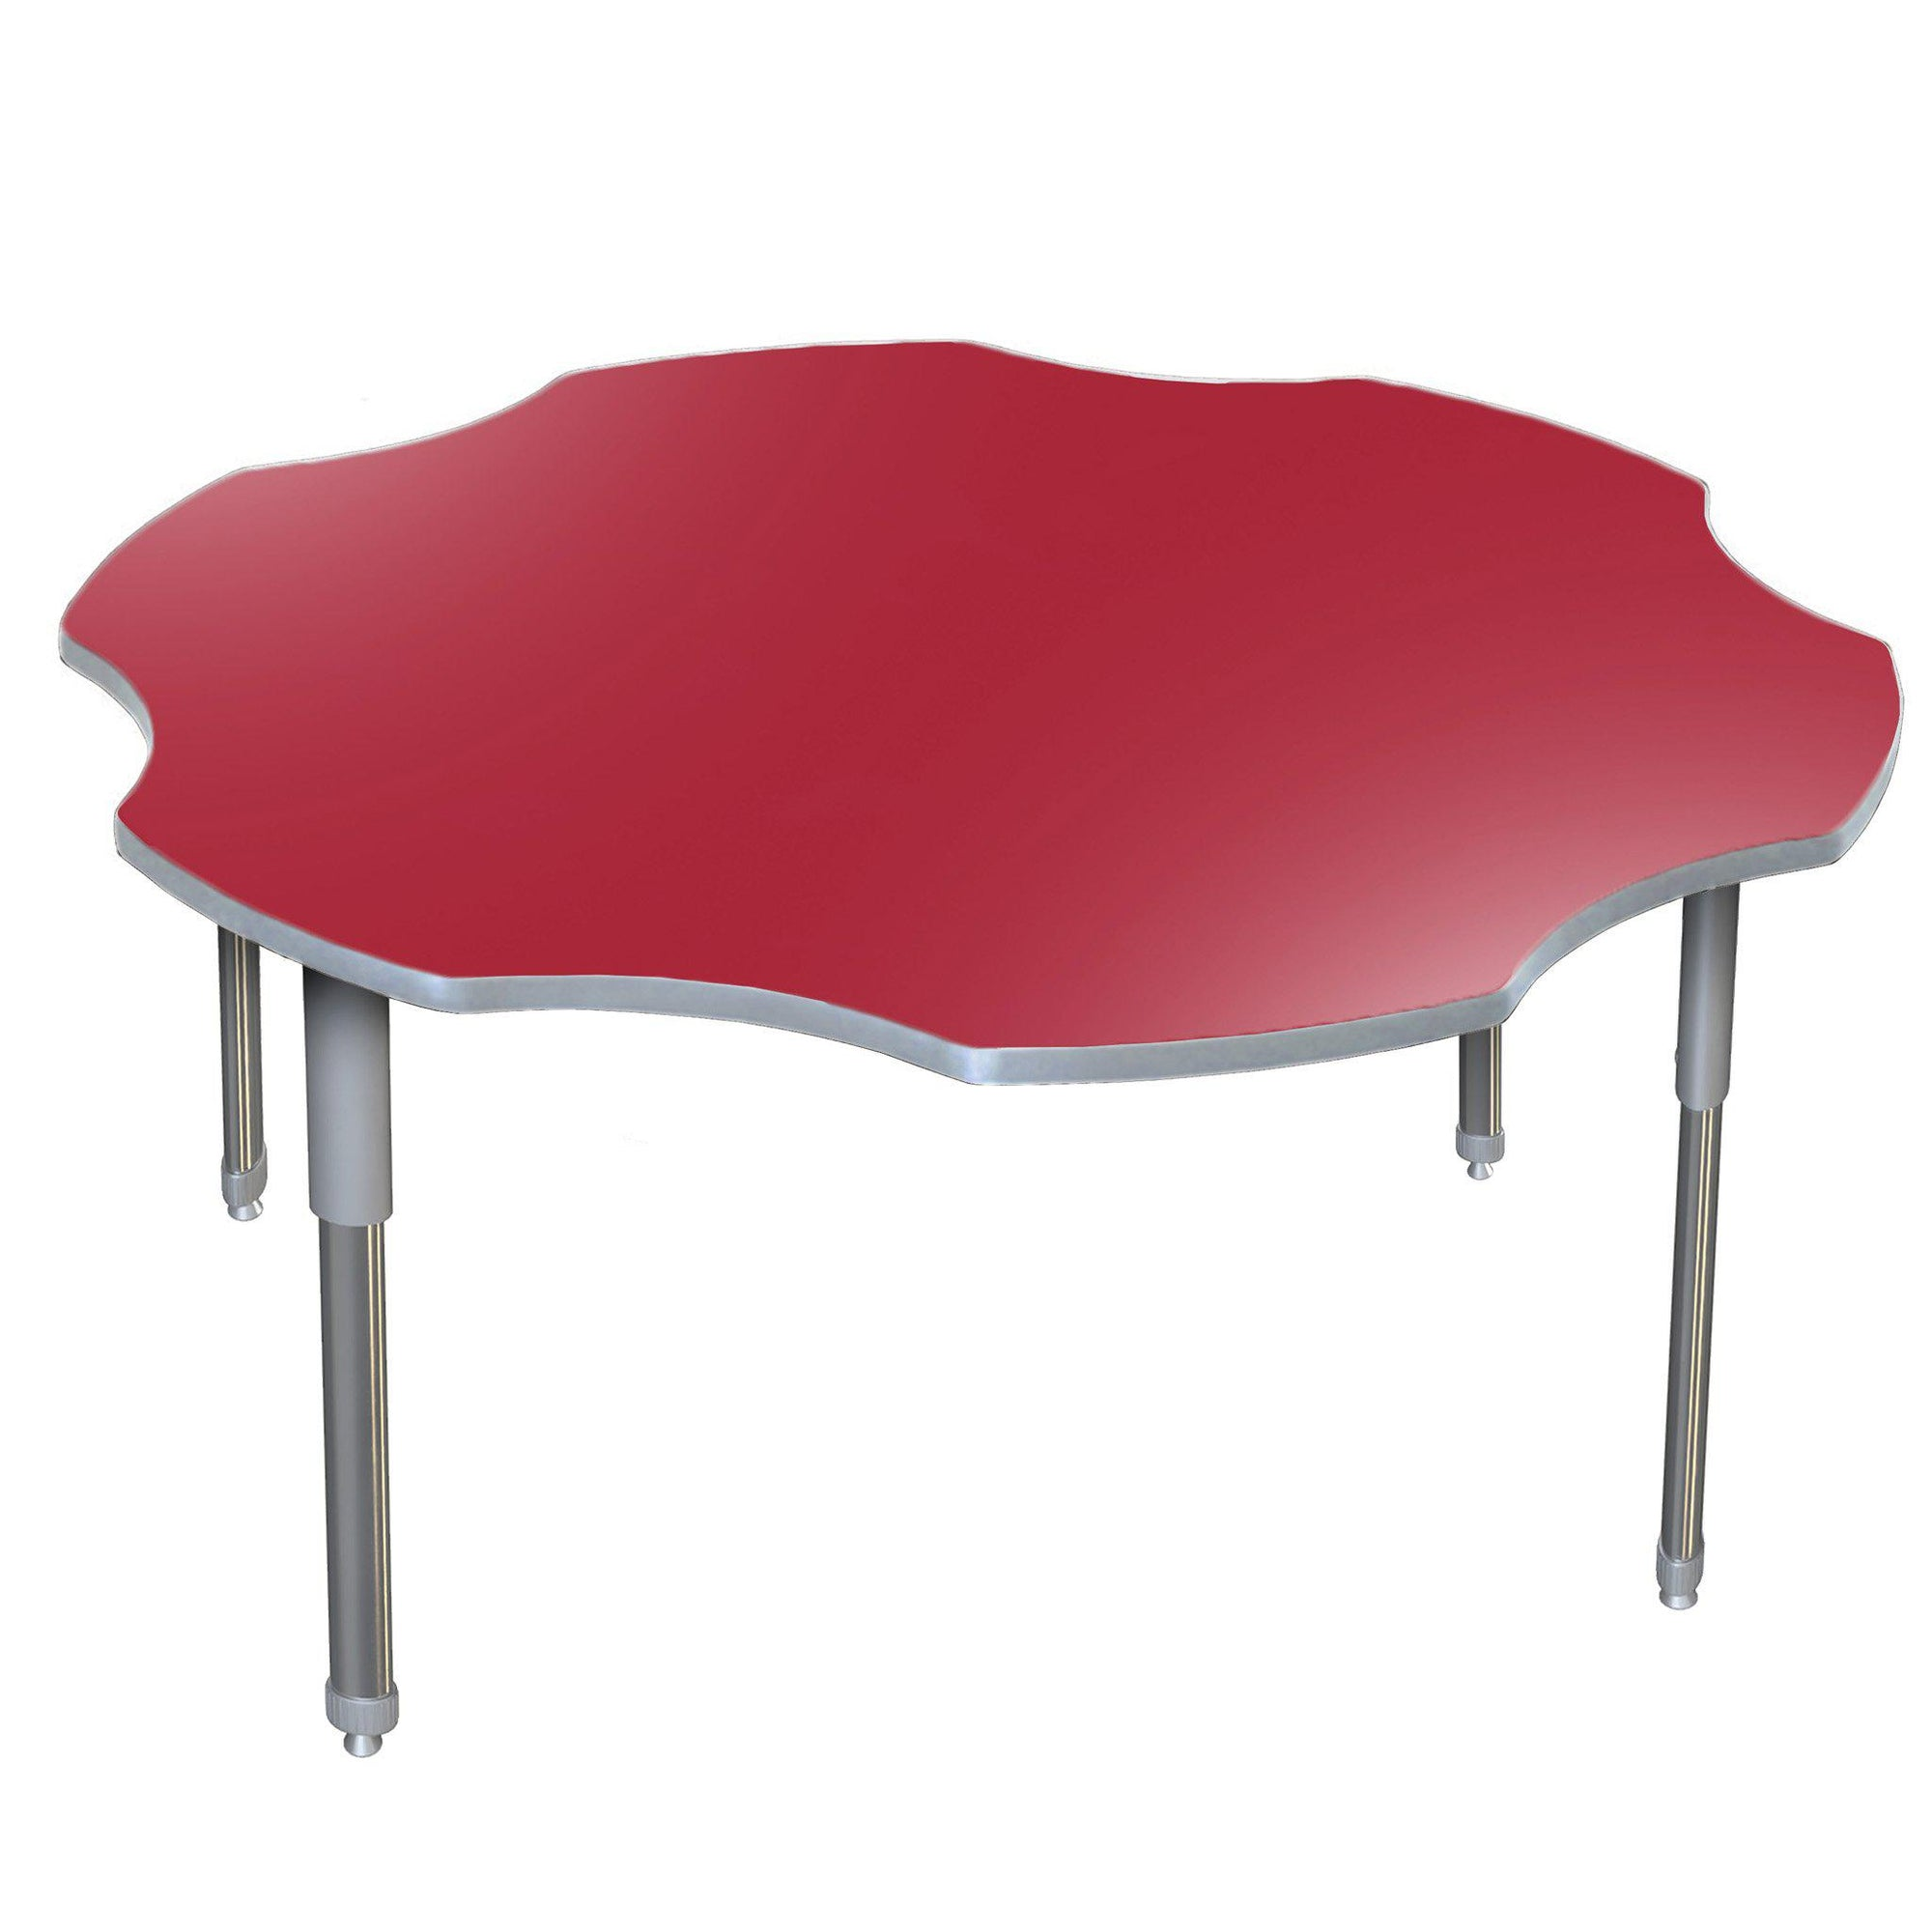 "Aero Activity Table, 60"" x 60"" Flower, Oval Adjustable Height Legs"